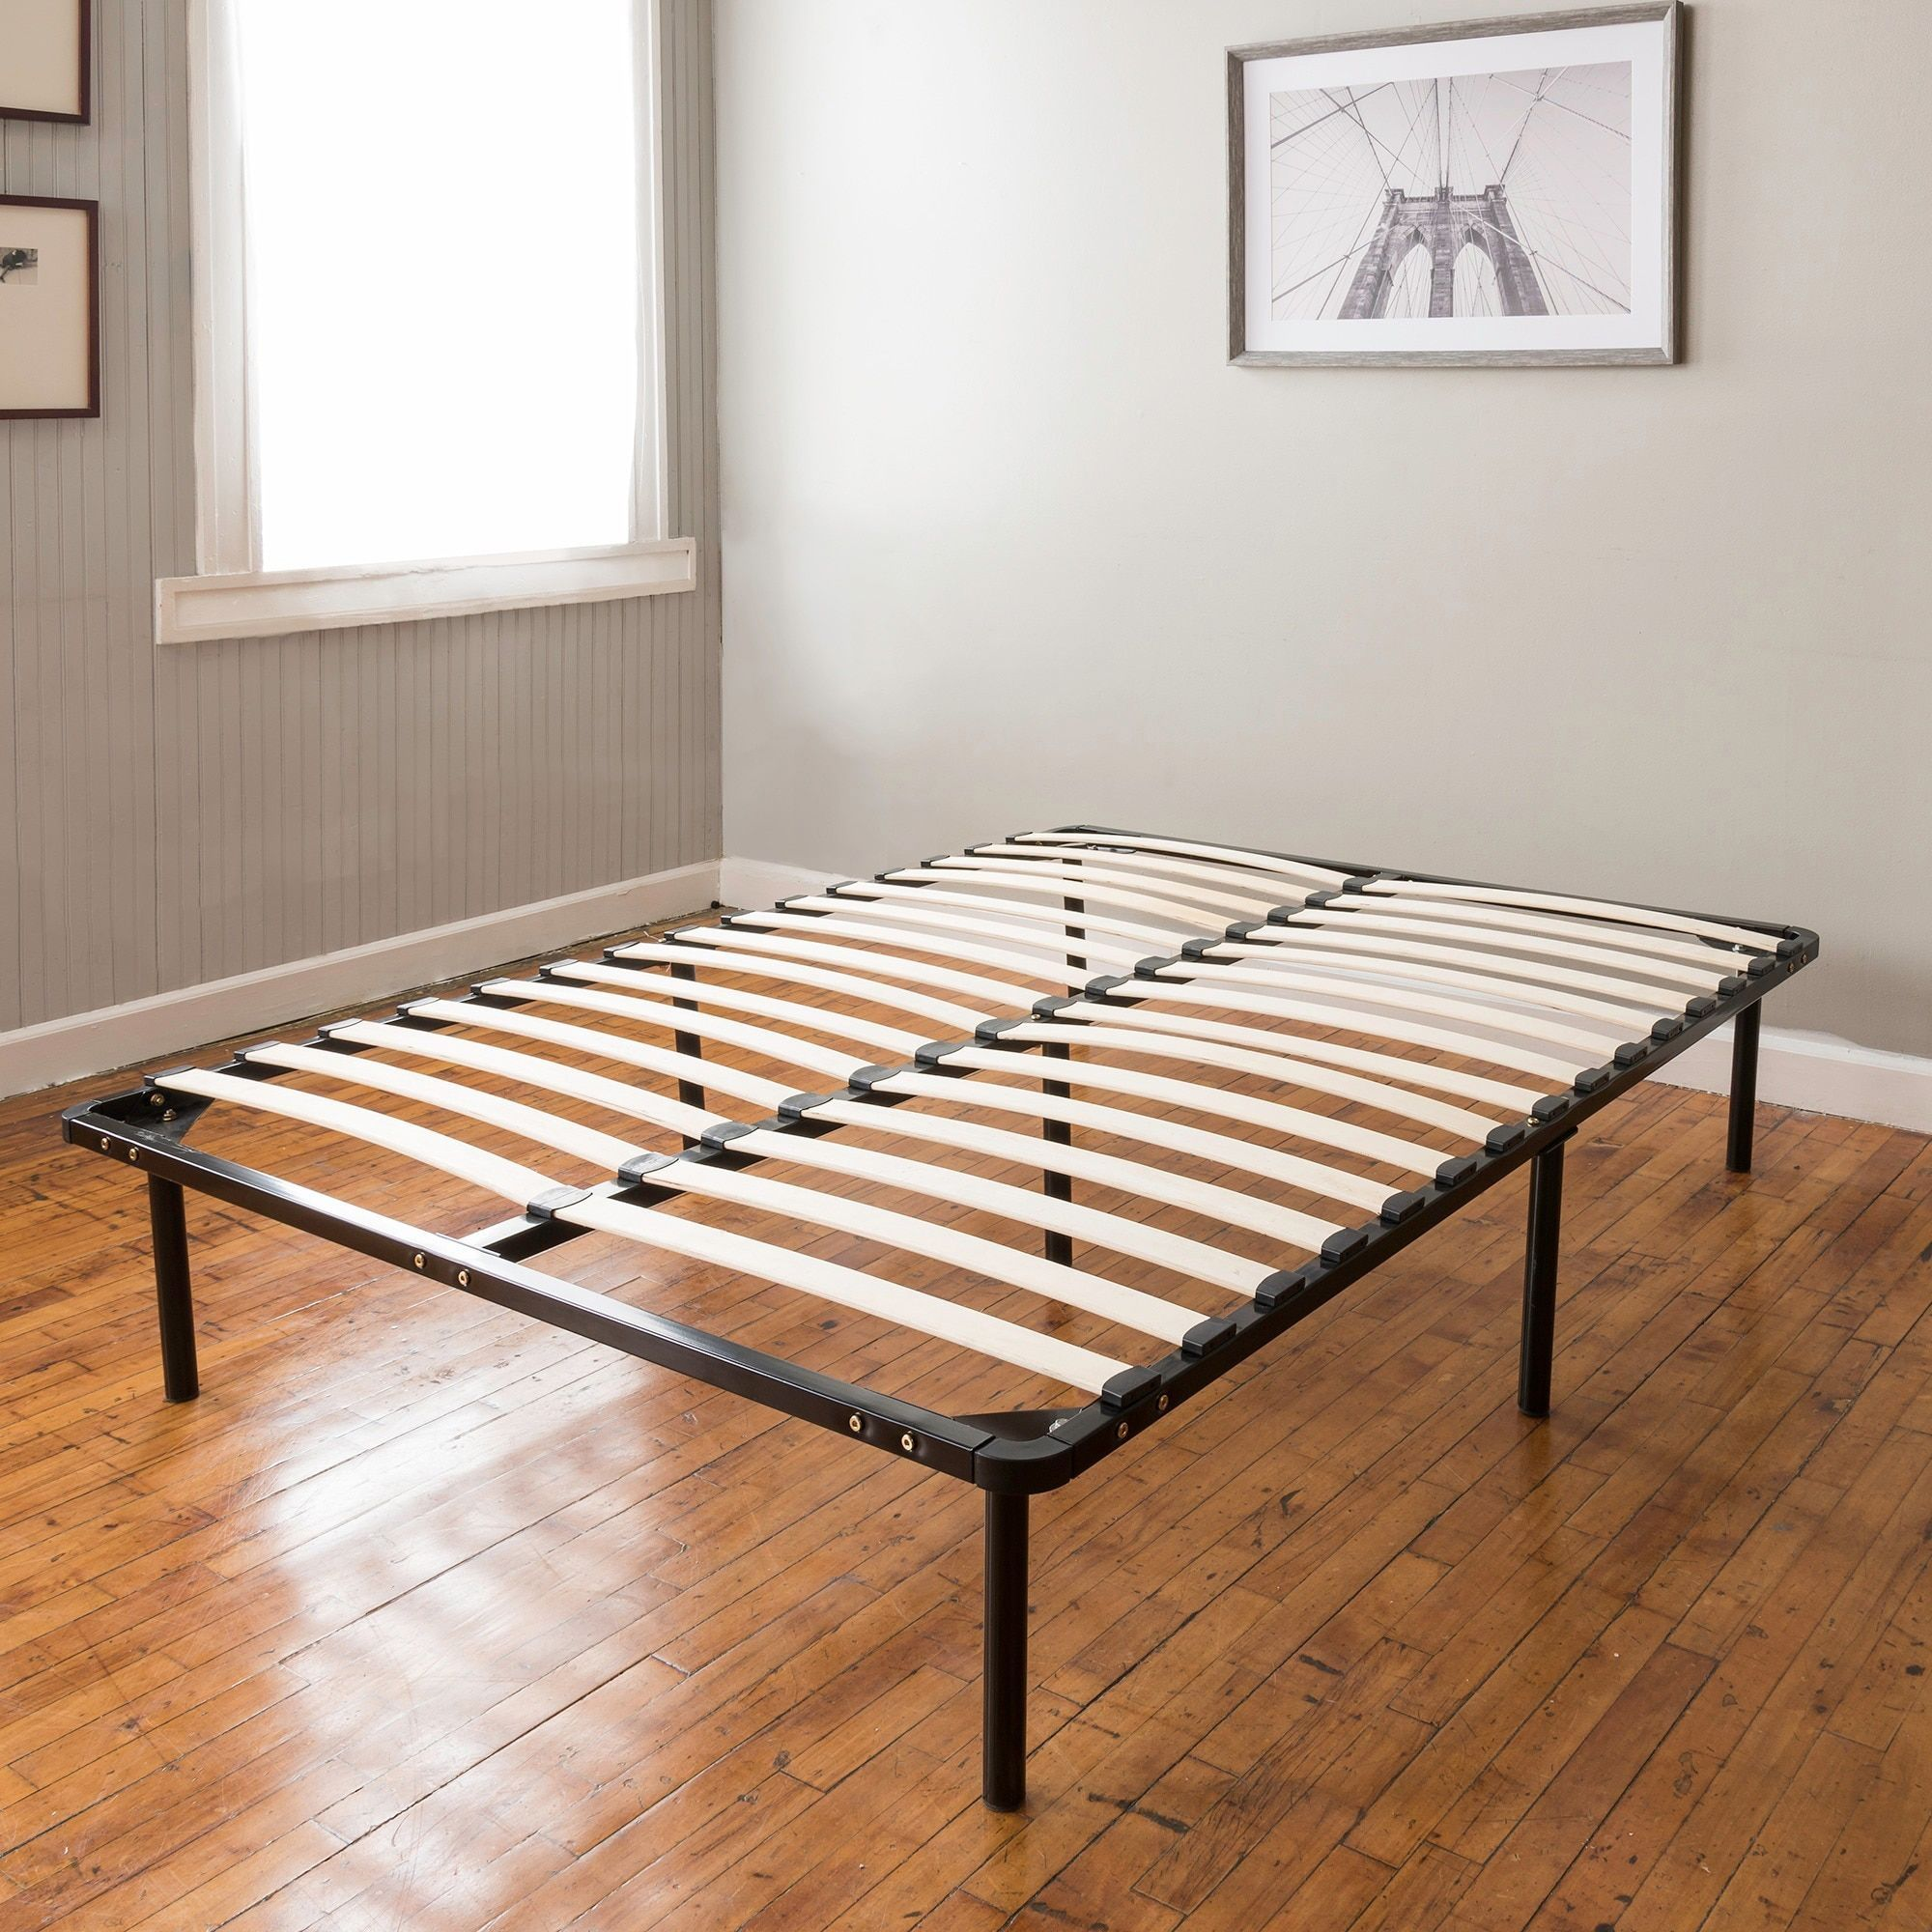 PostureLoft Wood Slat and Metal Platform Fullsize Bed